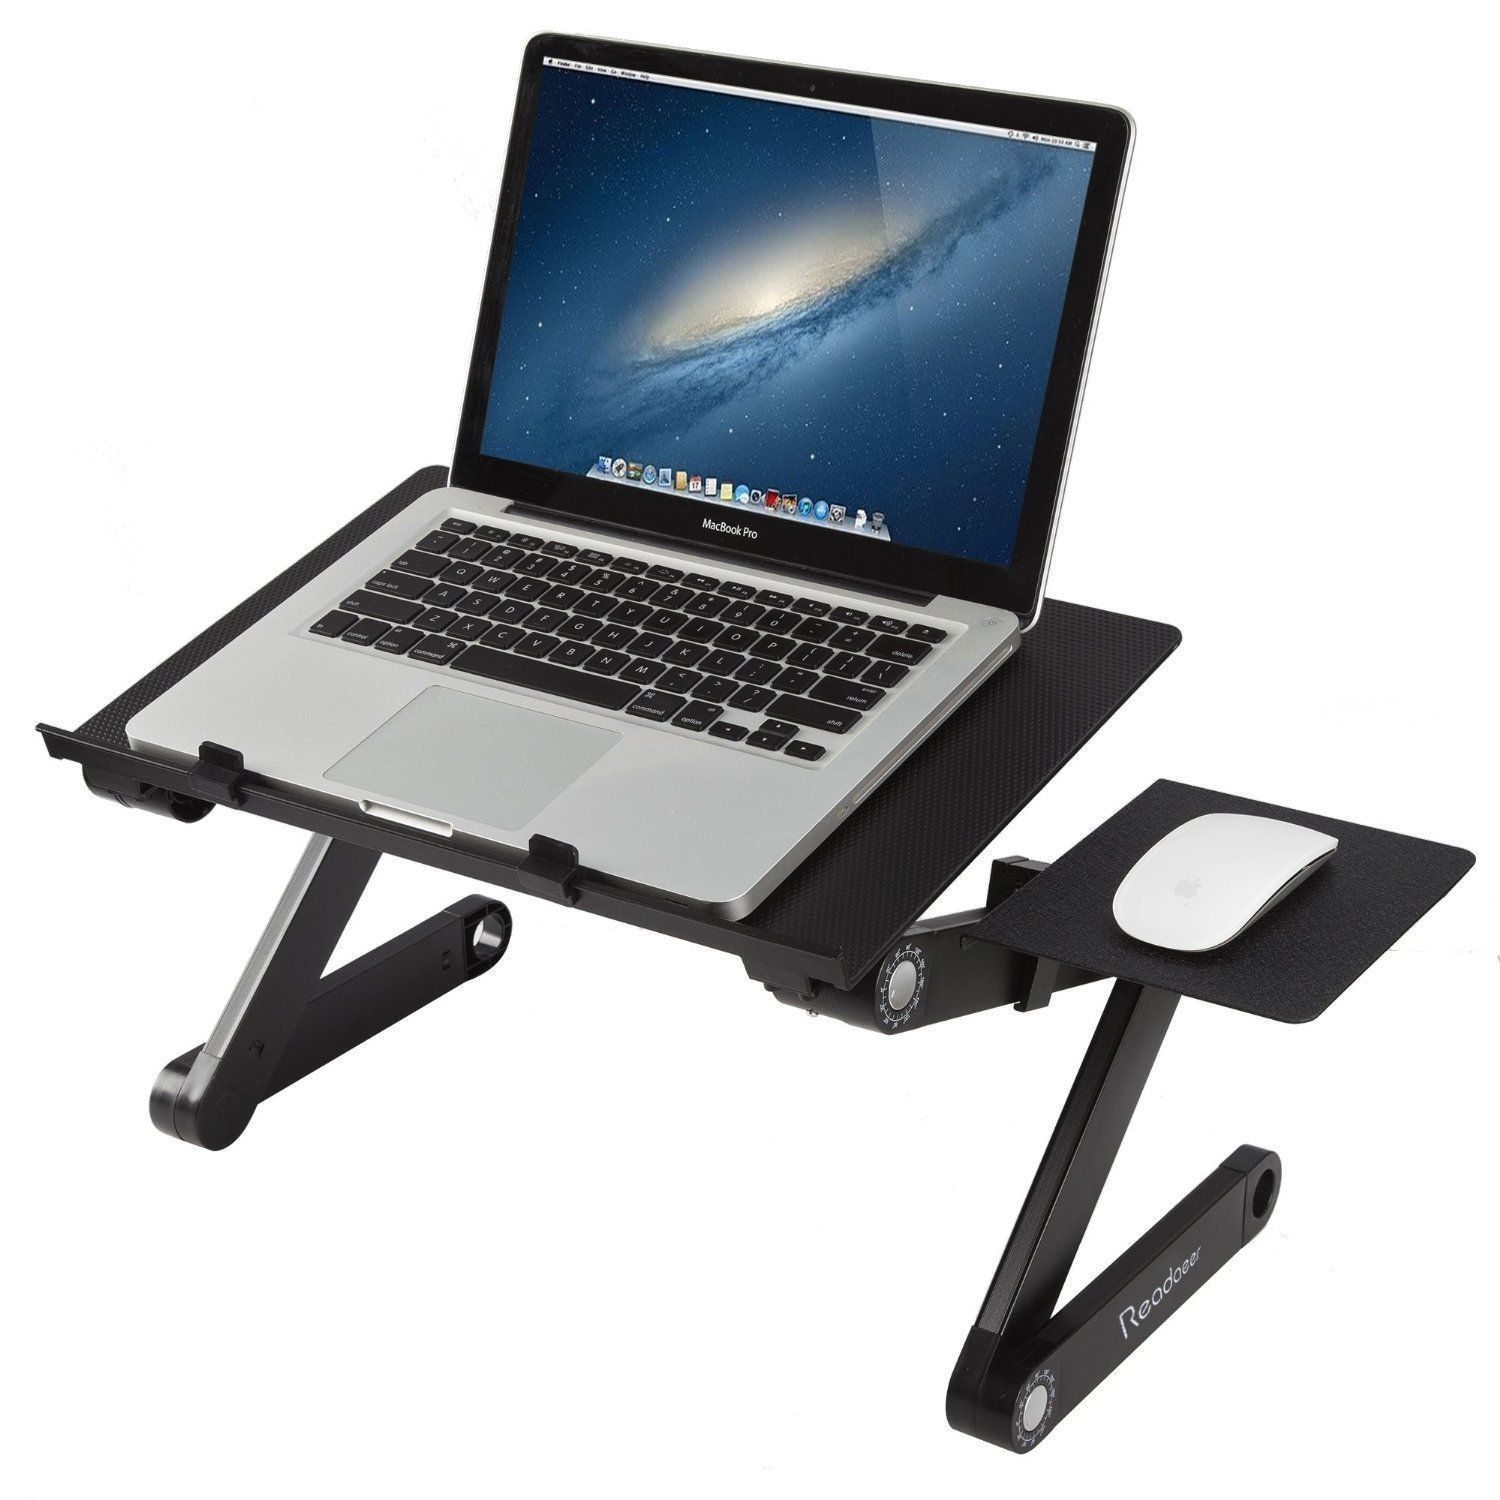 standing desk that adjustable tops goes down laptop furniture for portable converter and stand up solutions desktop